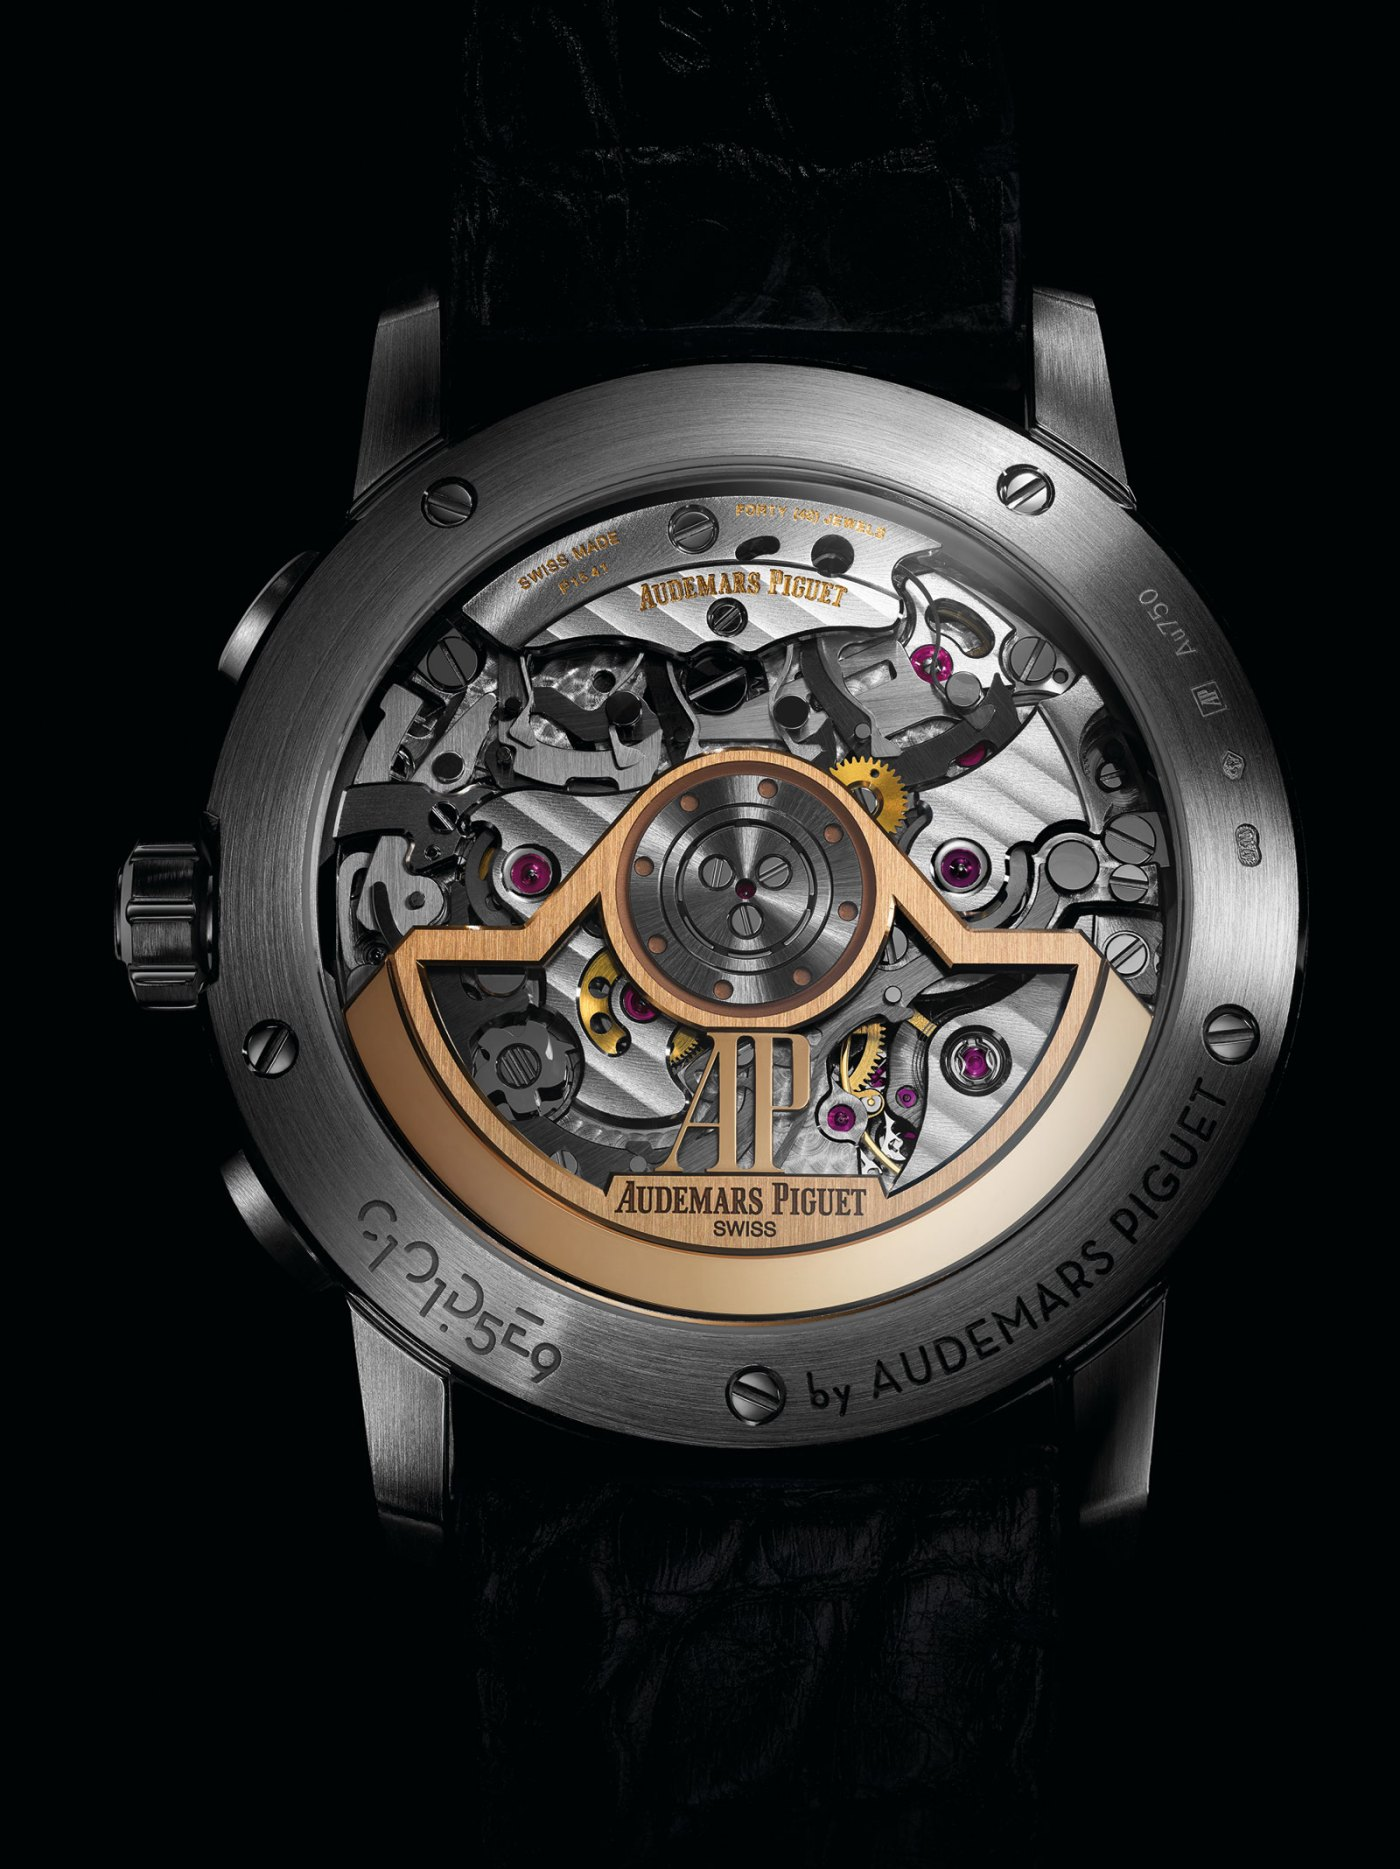 Audemars Piguet caliber 4401 in-house integrated chronograph with column-wheel, vertical clutch, and 70-hour power reserve